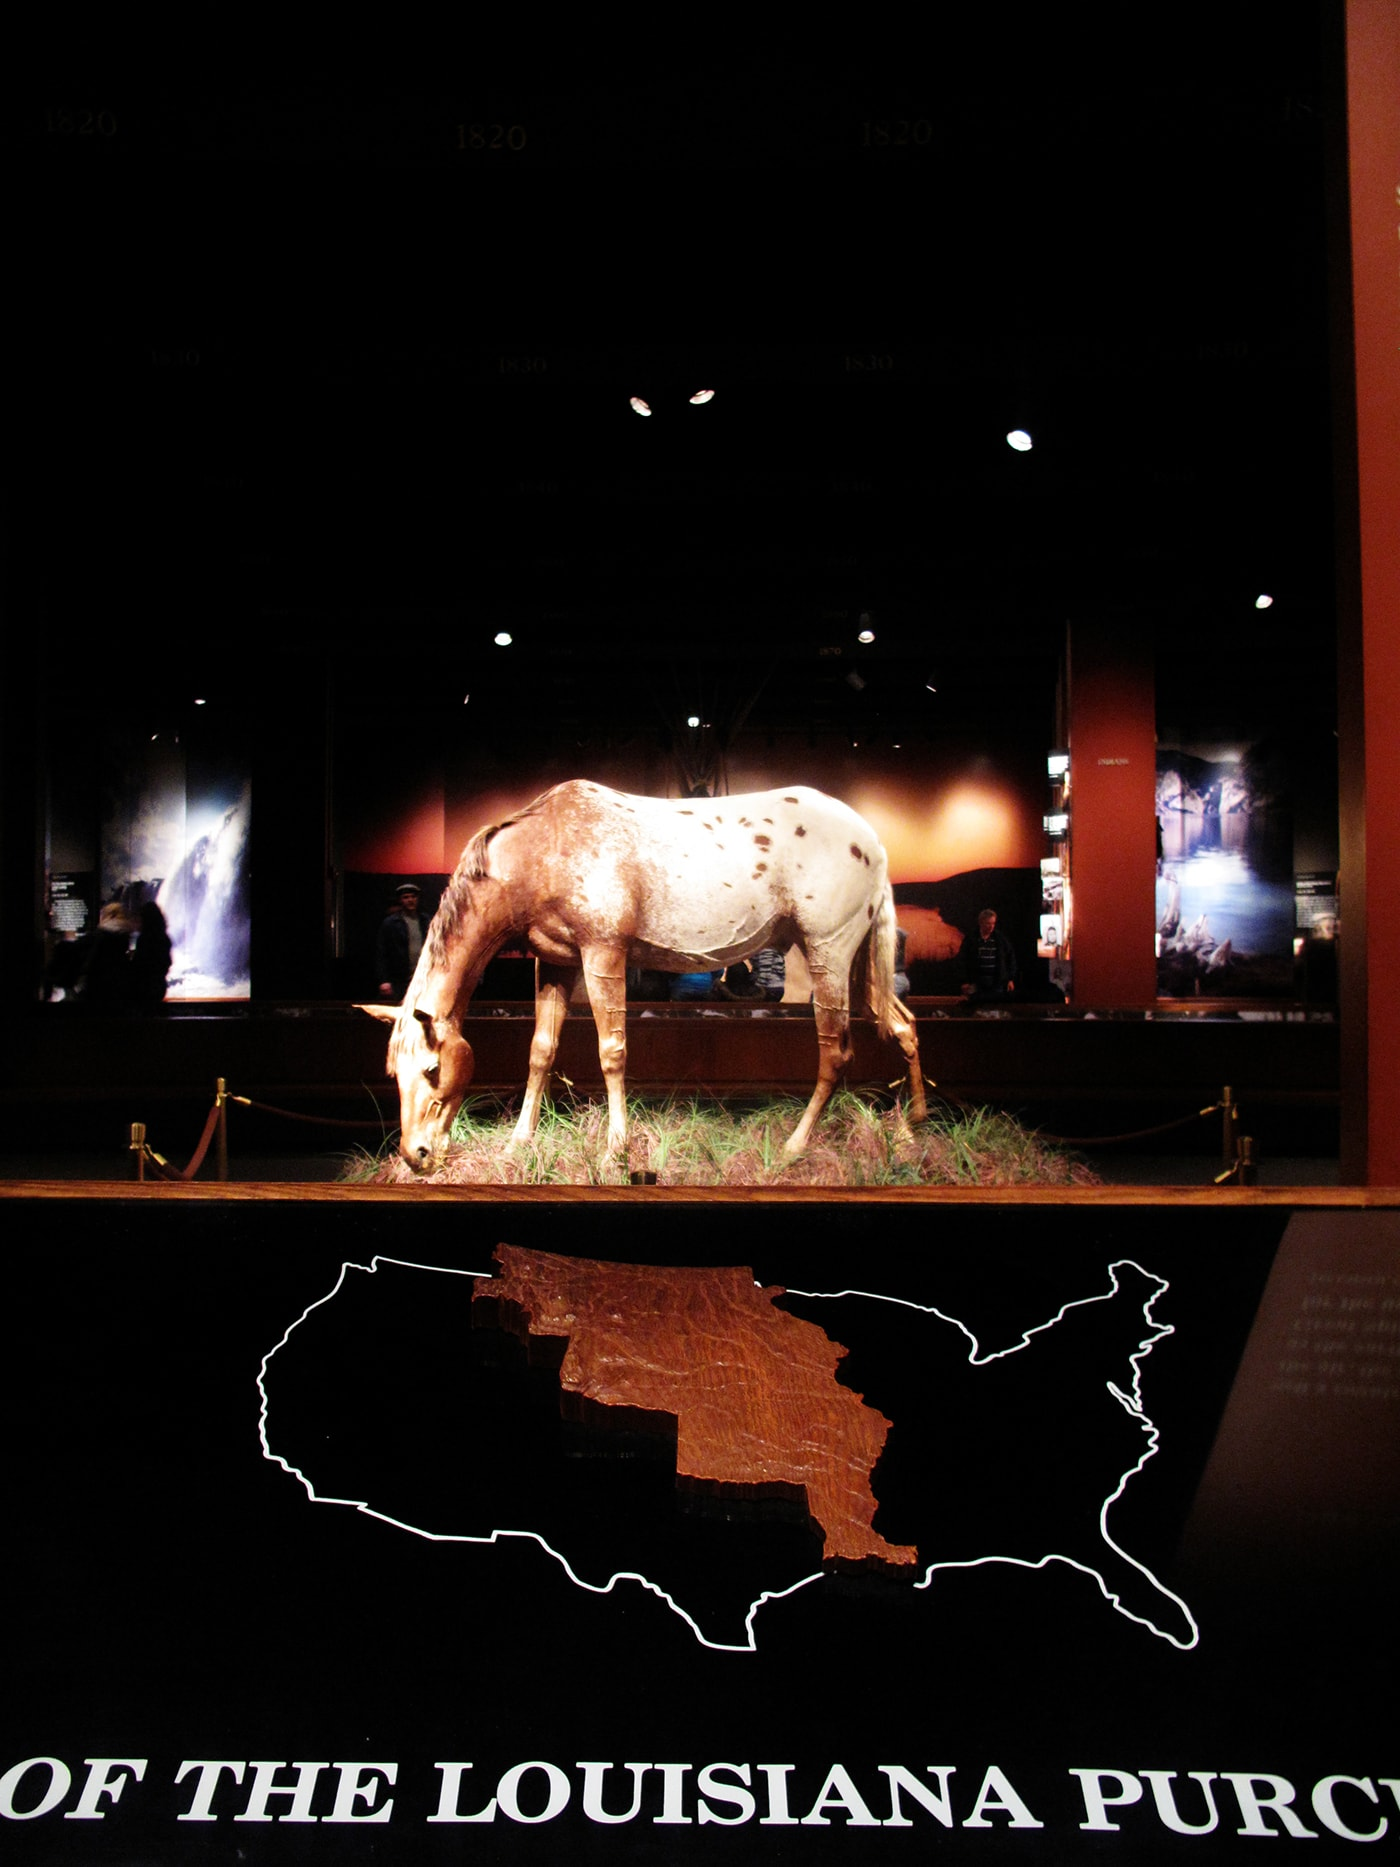 Museum of Westward Expansion in the Gateway Arch in St. Louis, Missouri